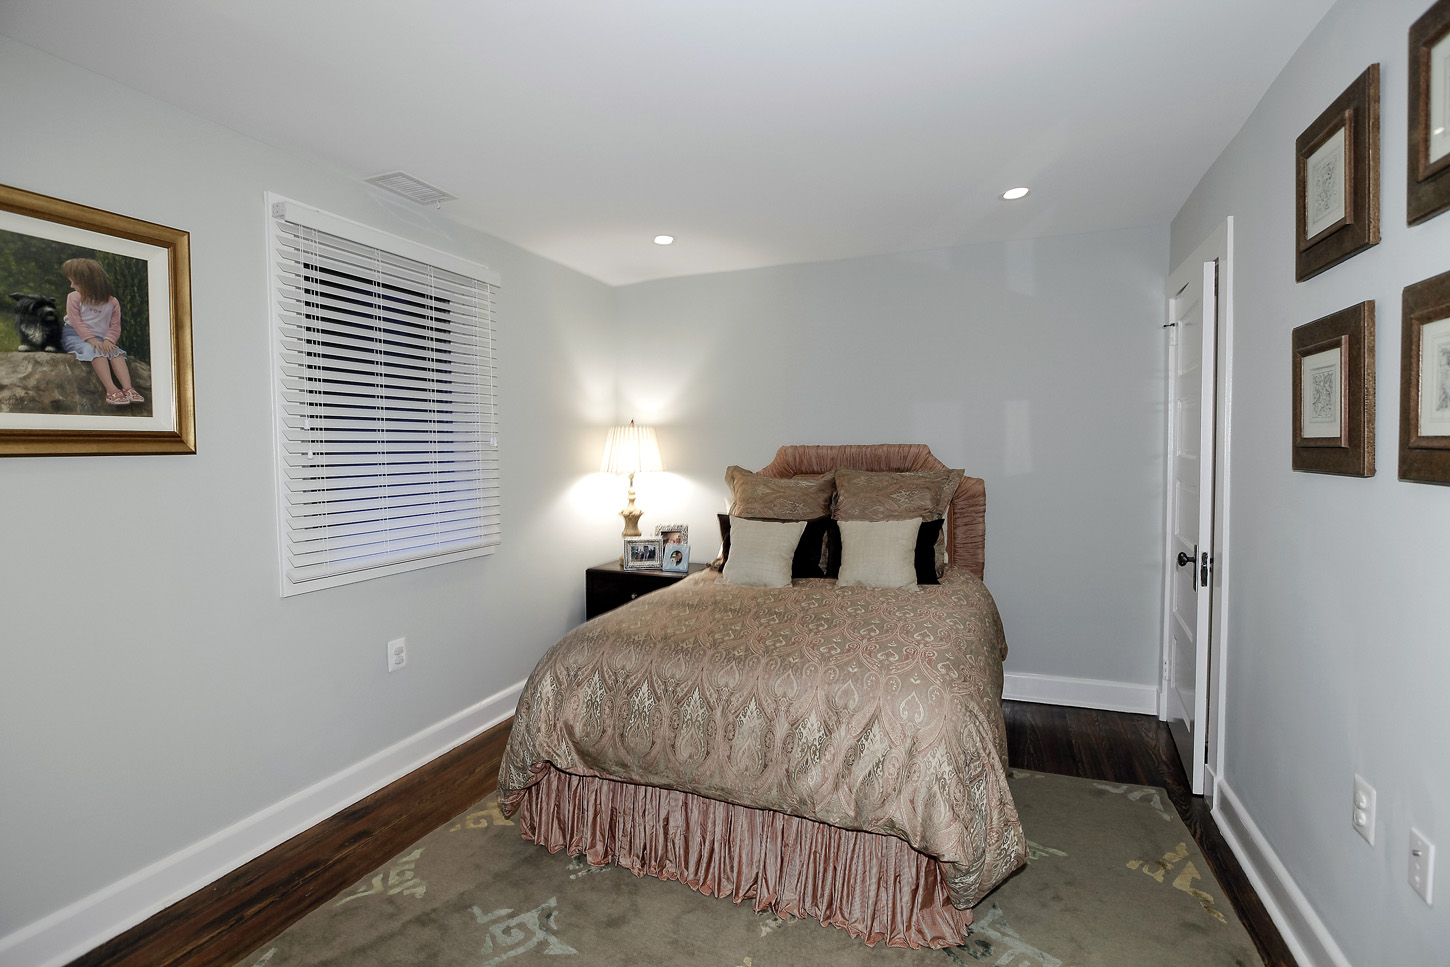 The au pair suite in the Obamas' new house, in the Kalorama area of Northwest D.C. (Courtesy McFadden Group)